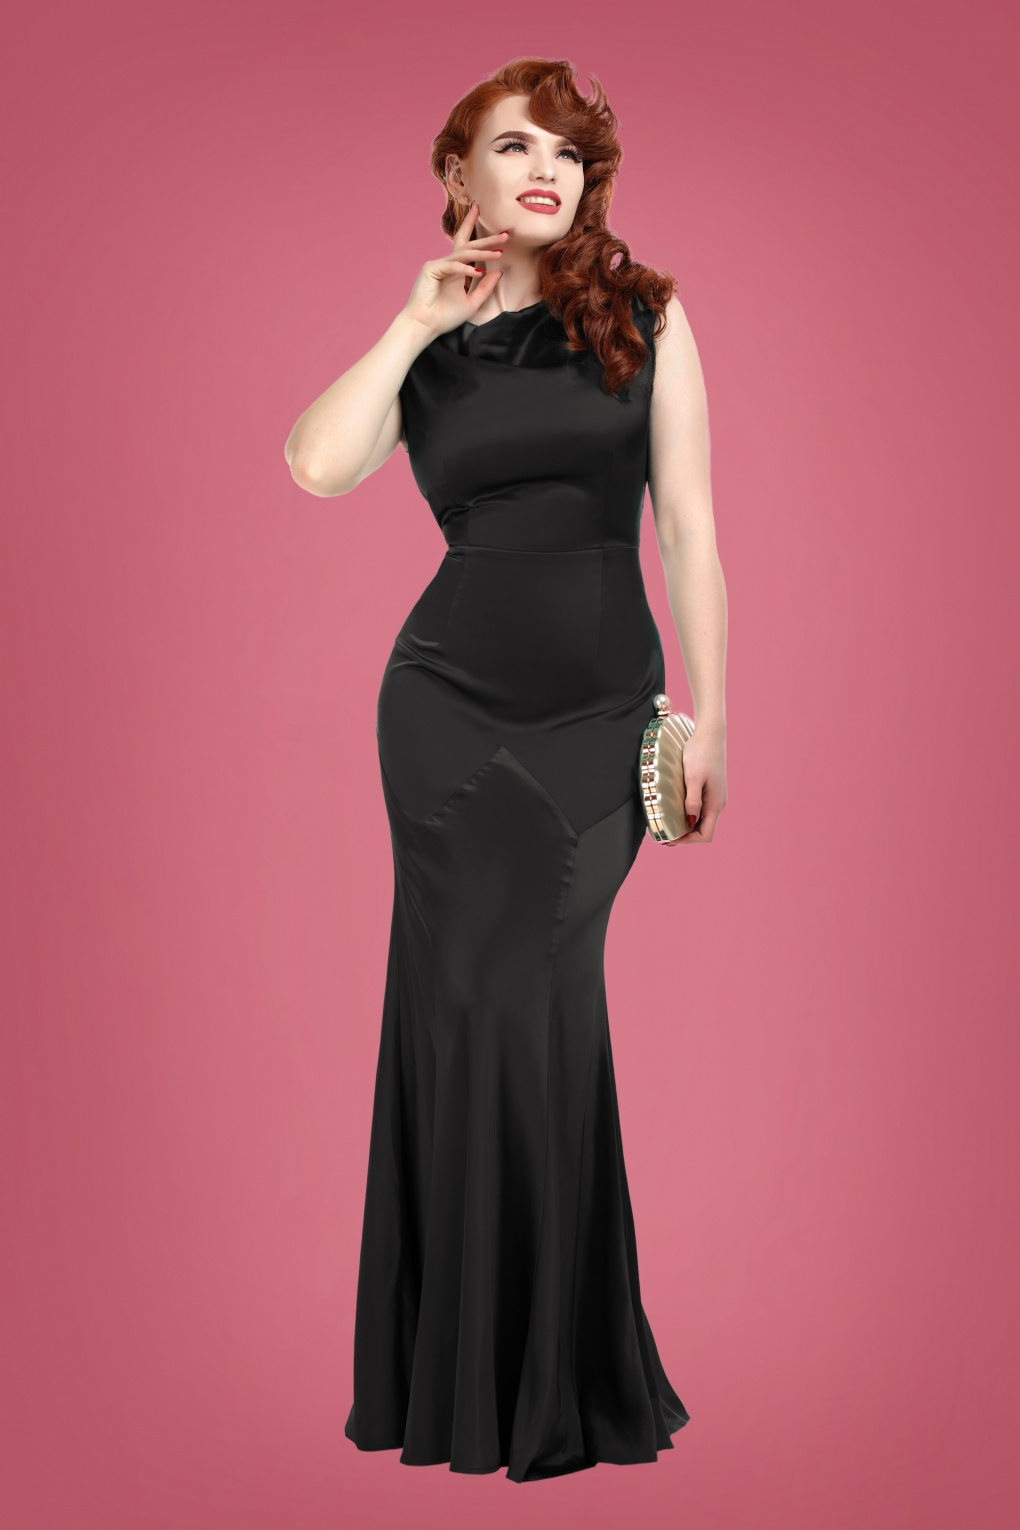 1930s Dresses, Shoes, Lingerie, Clothing UK 30s Ingrid Fishtail Maxi Dress in Black £96.22 AT vintagedancer.com